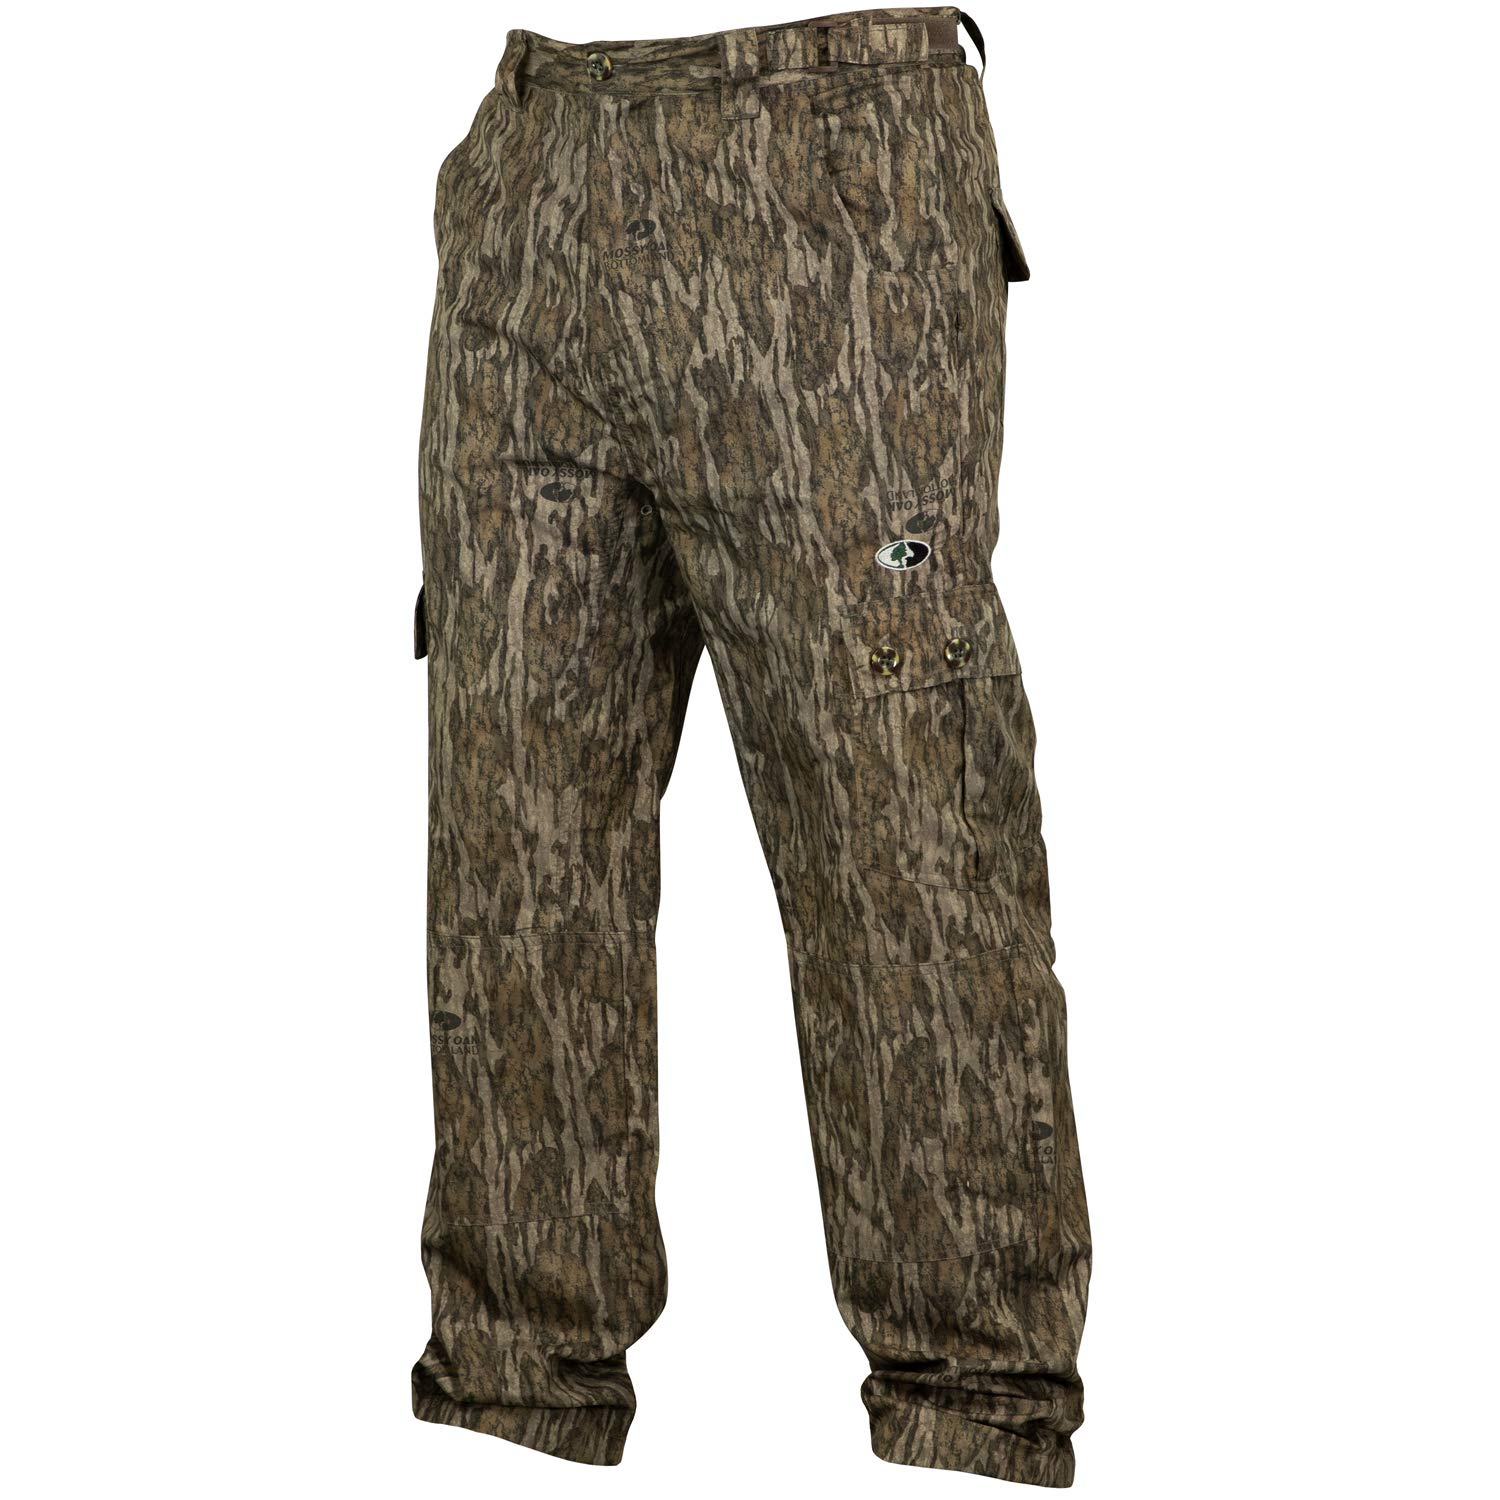 Mossy Oak Men's Tibbee Technical Lightweight Camo Hunting Pants, Bottomland, 3X-Large